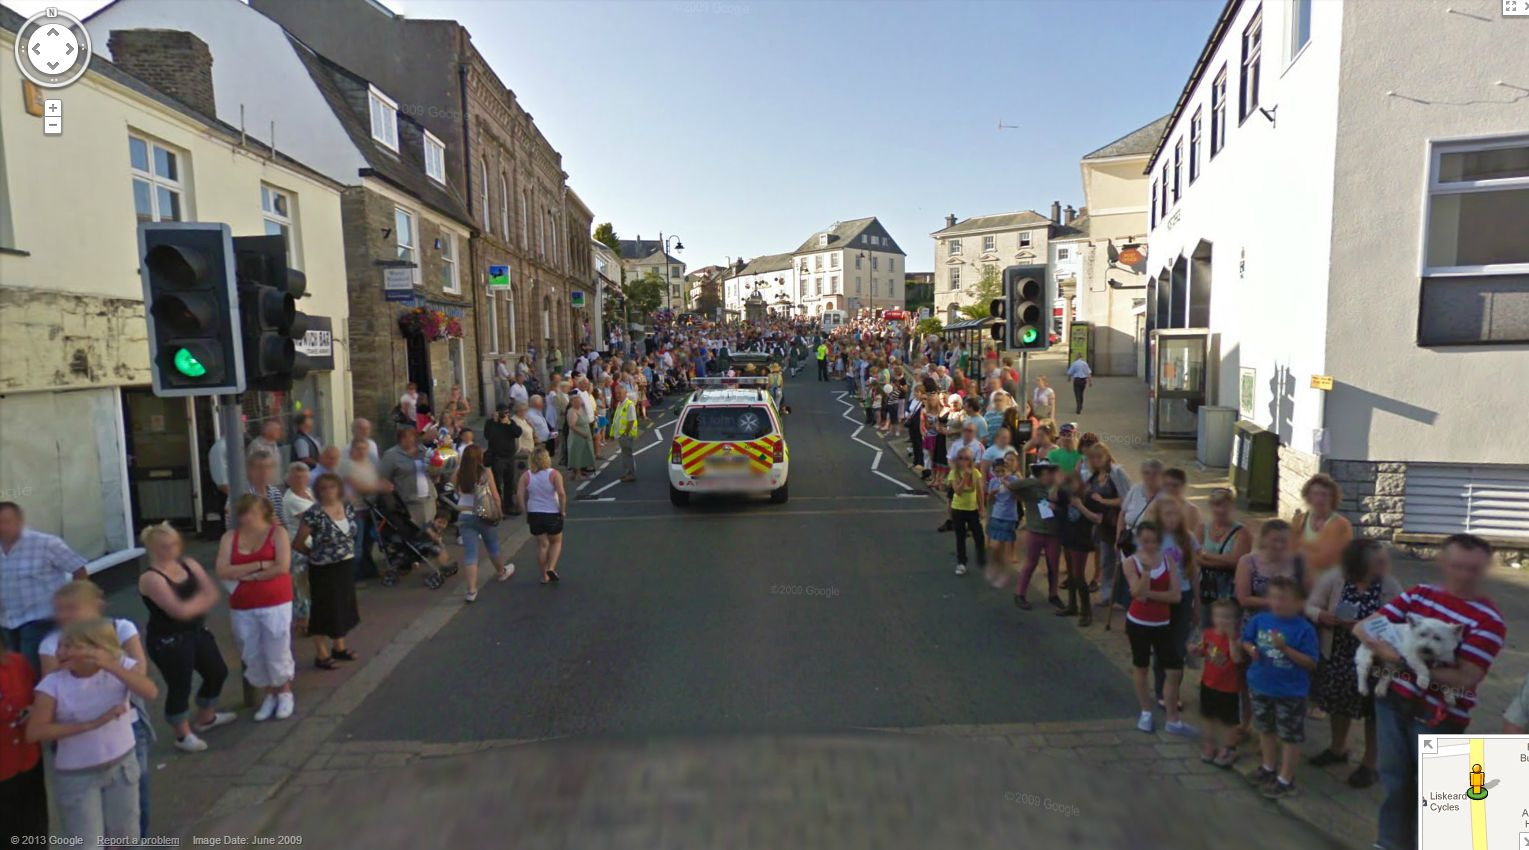 street view caught in a parade again 1 year ago by google street view ...